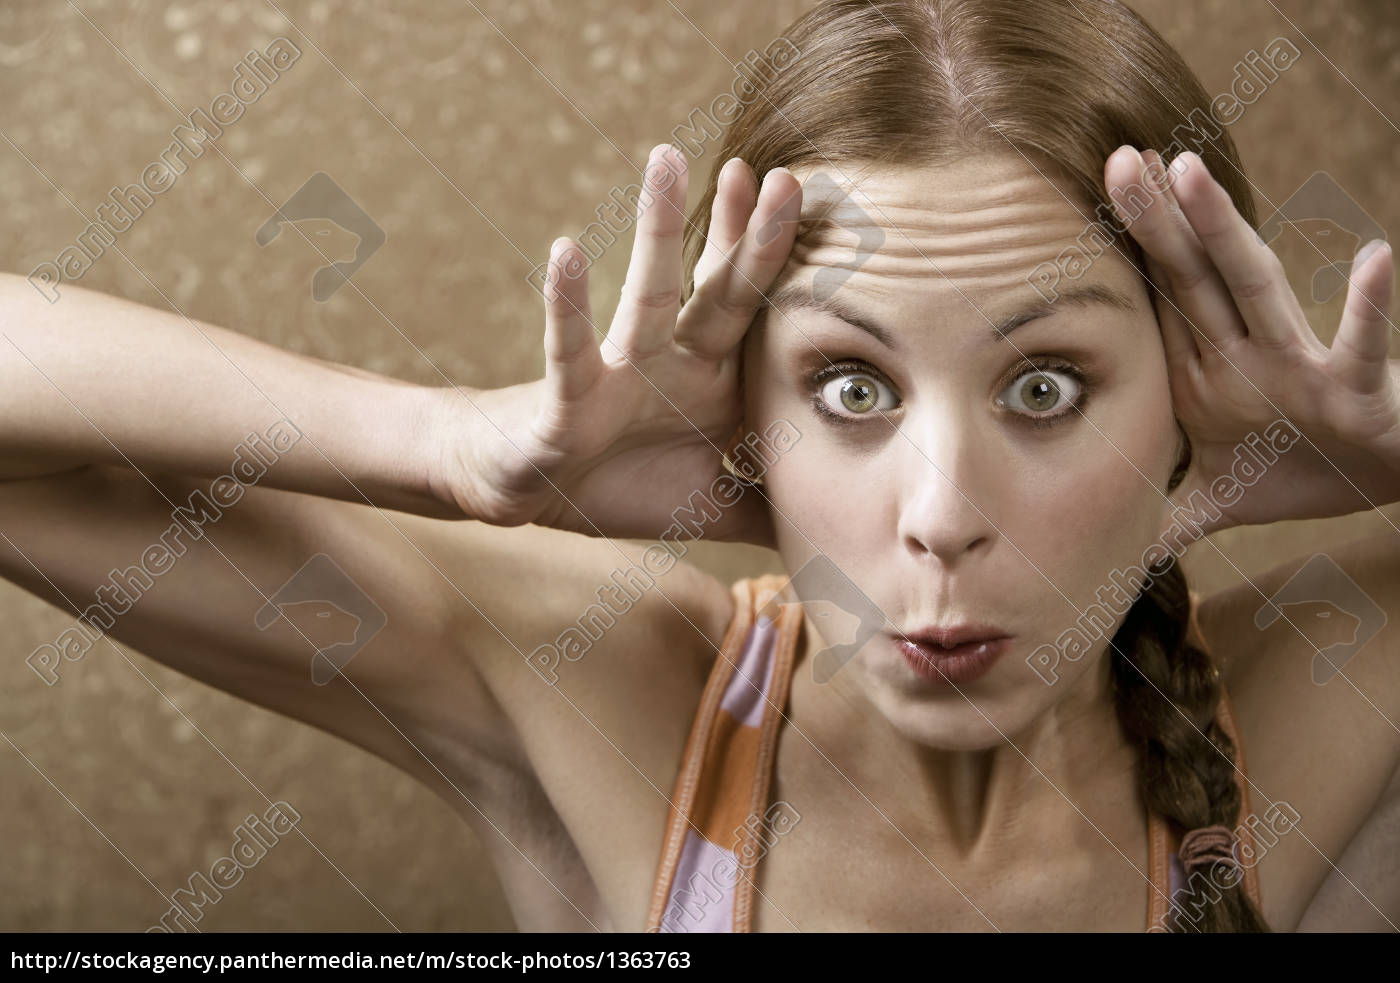 woman, making, a, funny, face - 1363763